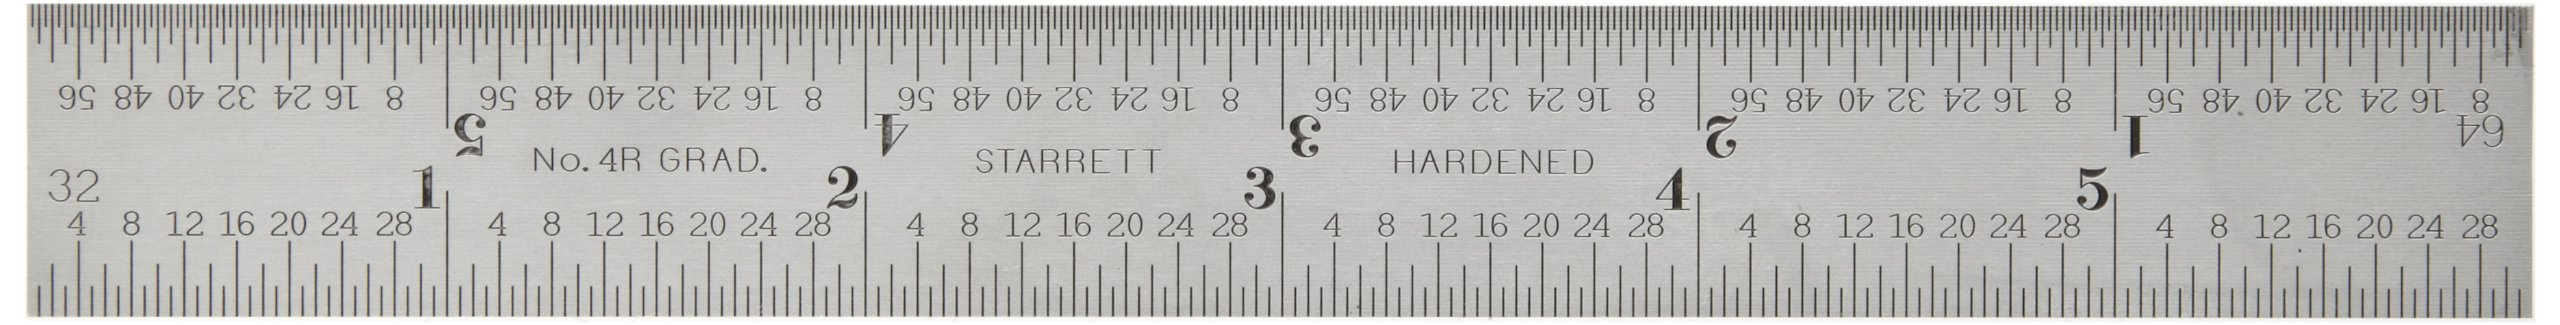 Starrett CB6-4R Combination Square Blade With Inch Graduations, Sets And Bevel Protractors, Satin Chrome Finish, 4R Graduation, 3/4'' Width, 5/64'' Thickness, 6'' Size